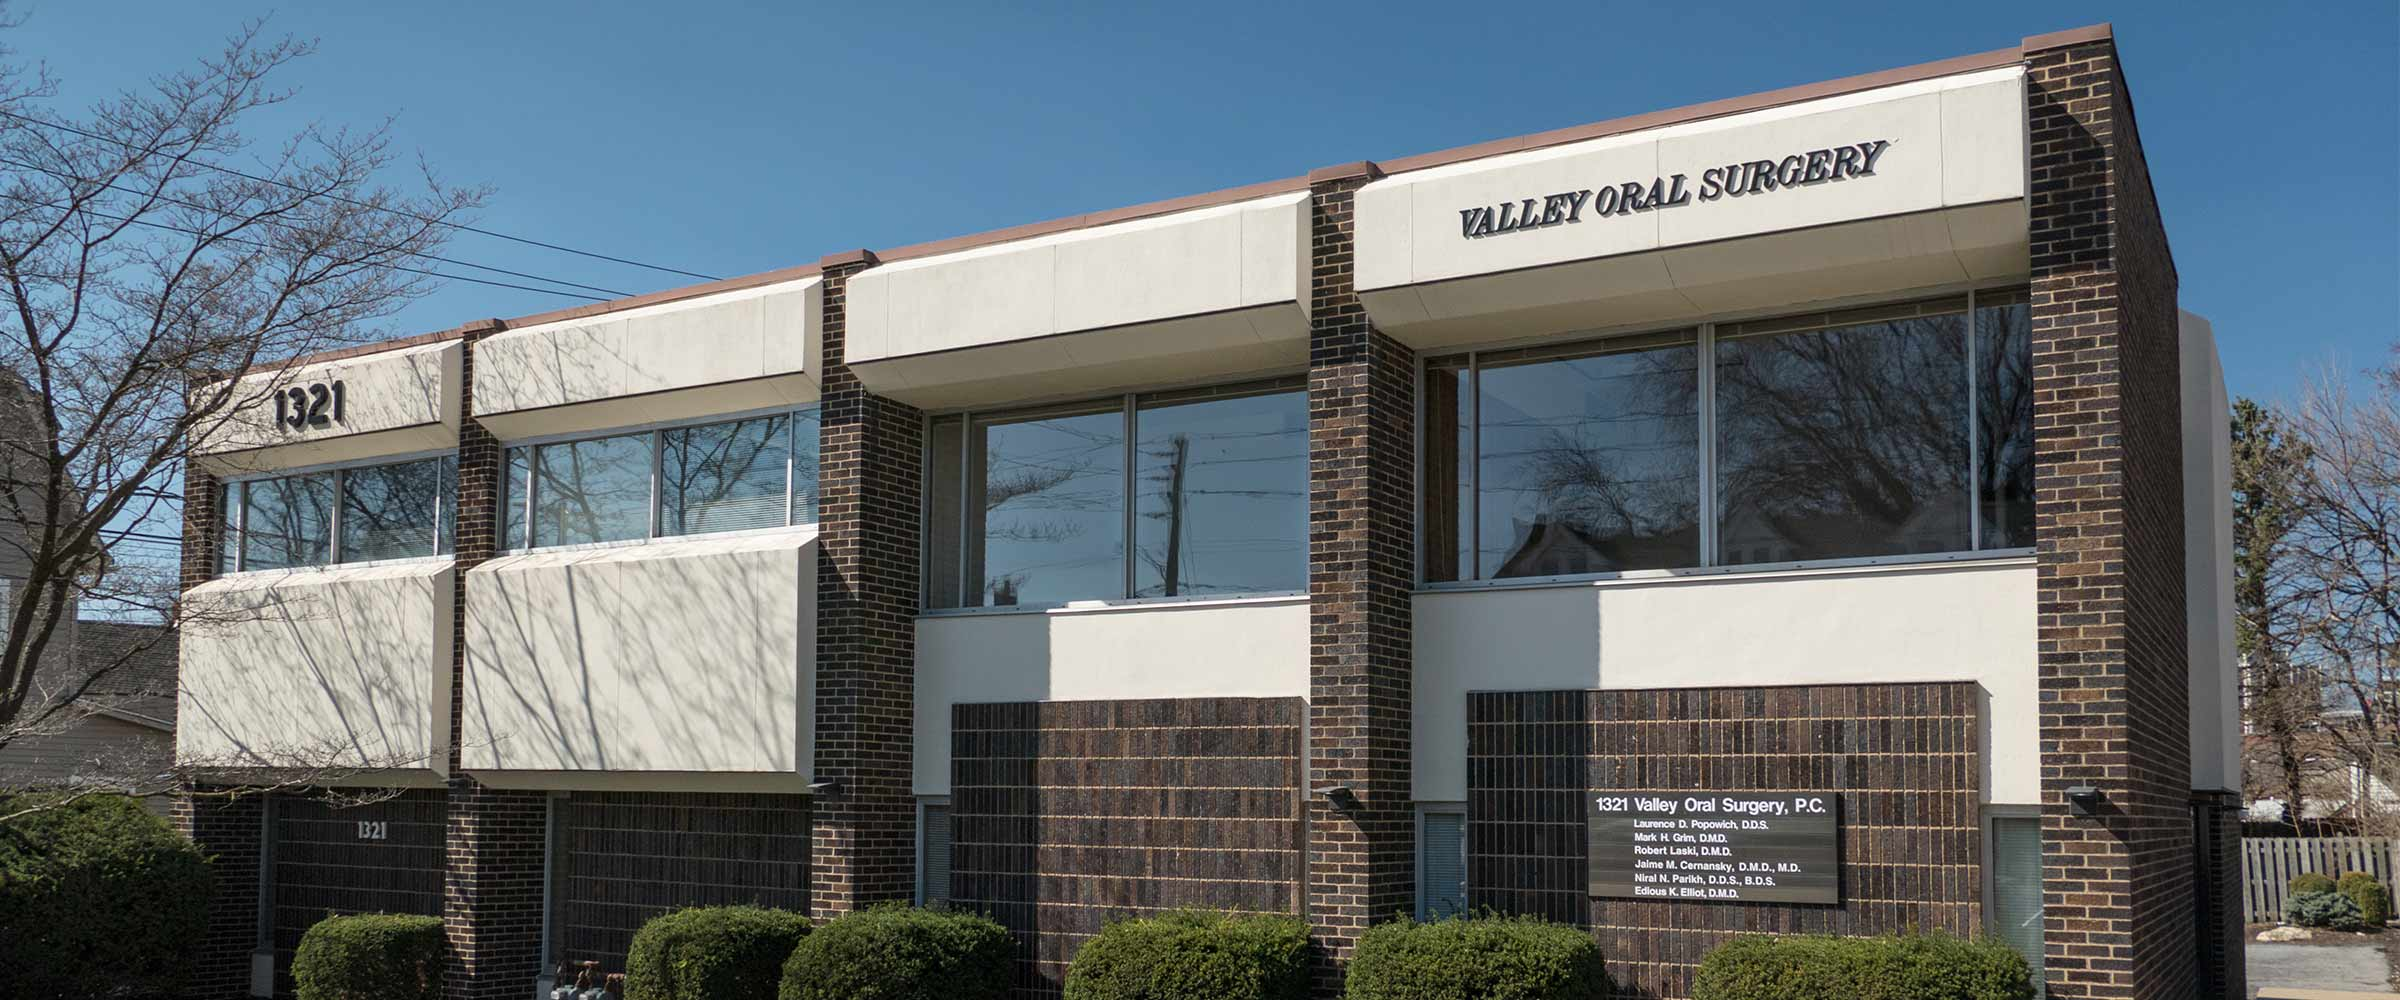 Valley Oral Surgery Bethlehem PA office